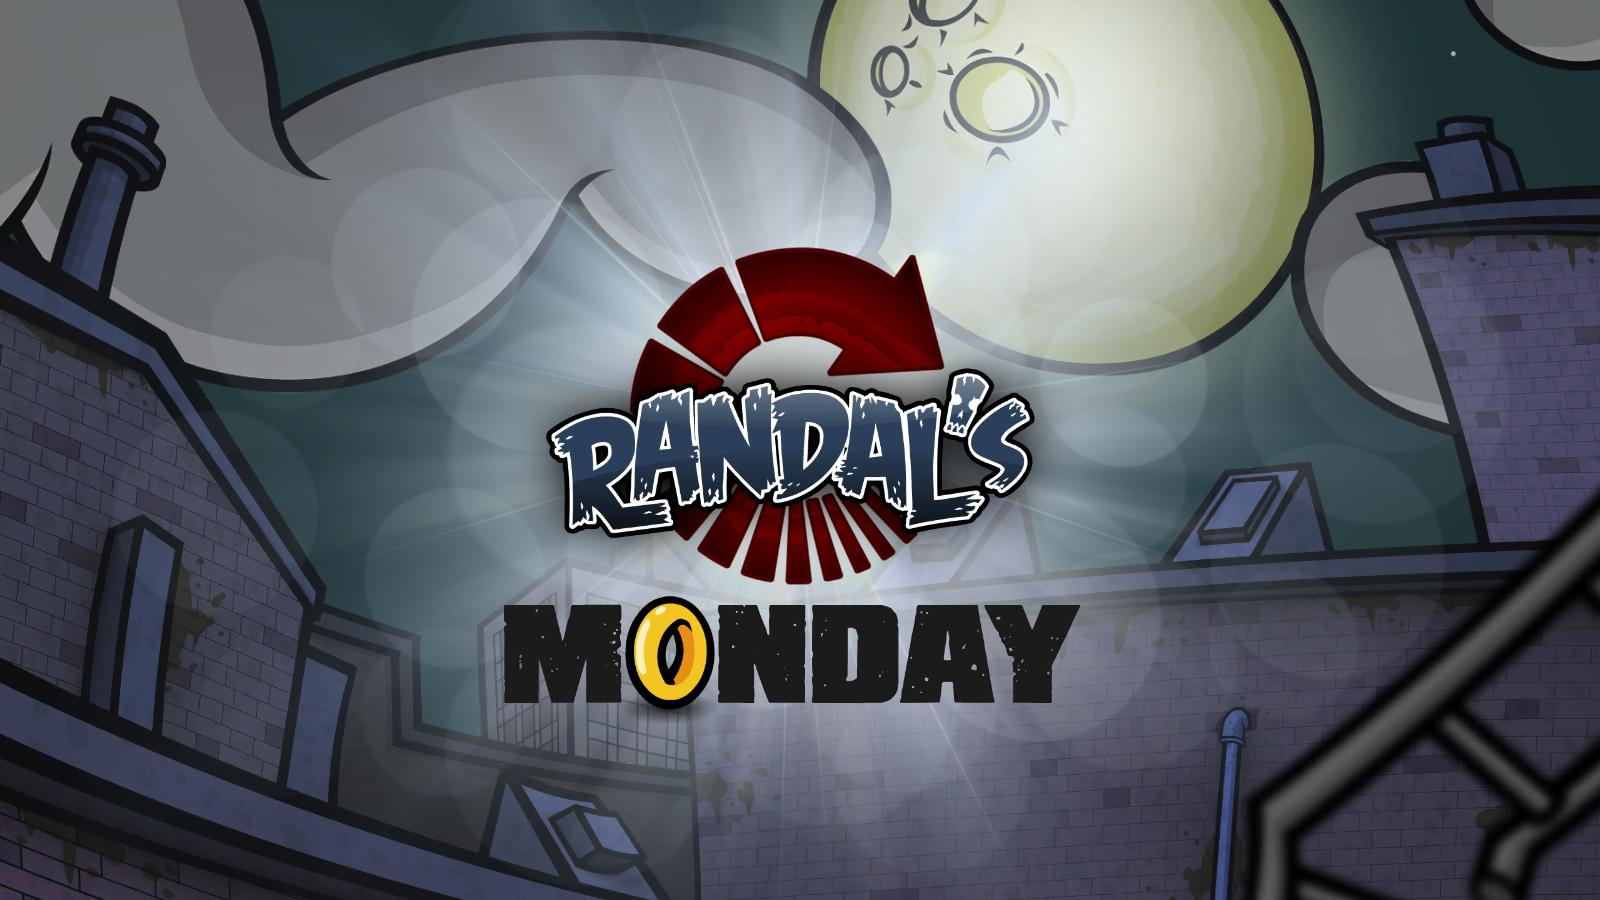 Randal's Monday Multilenguaje (Castellano)